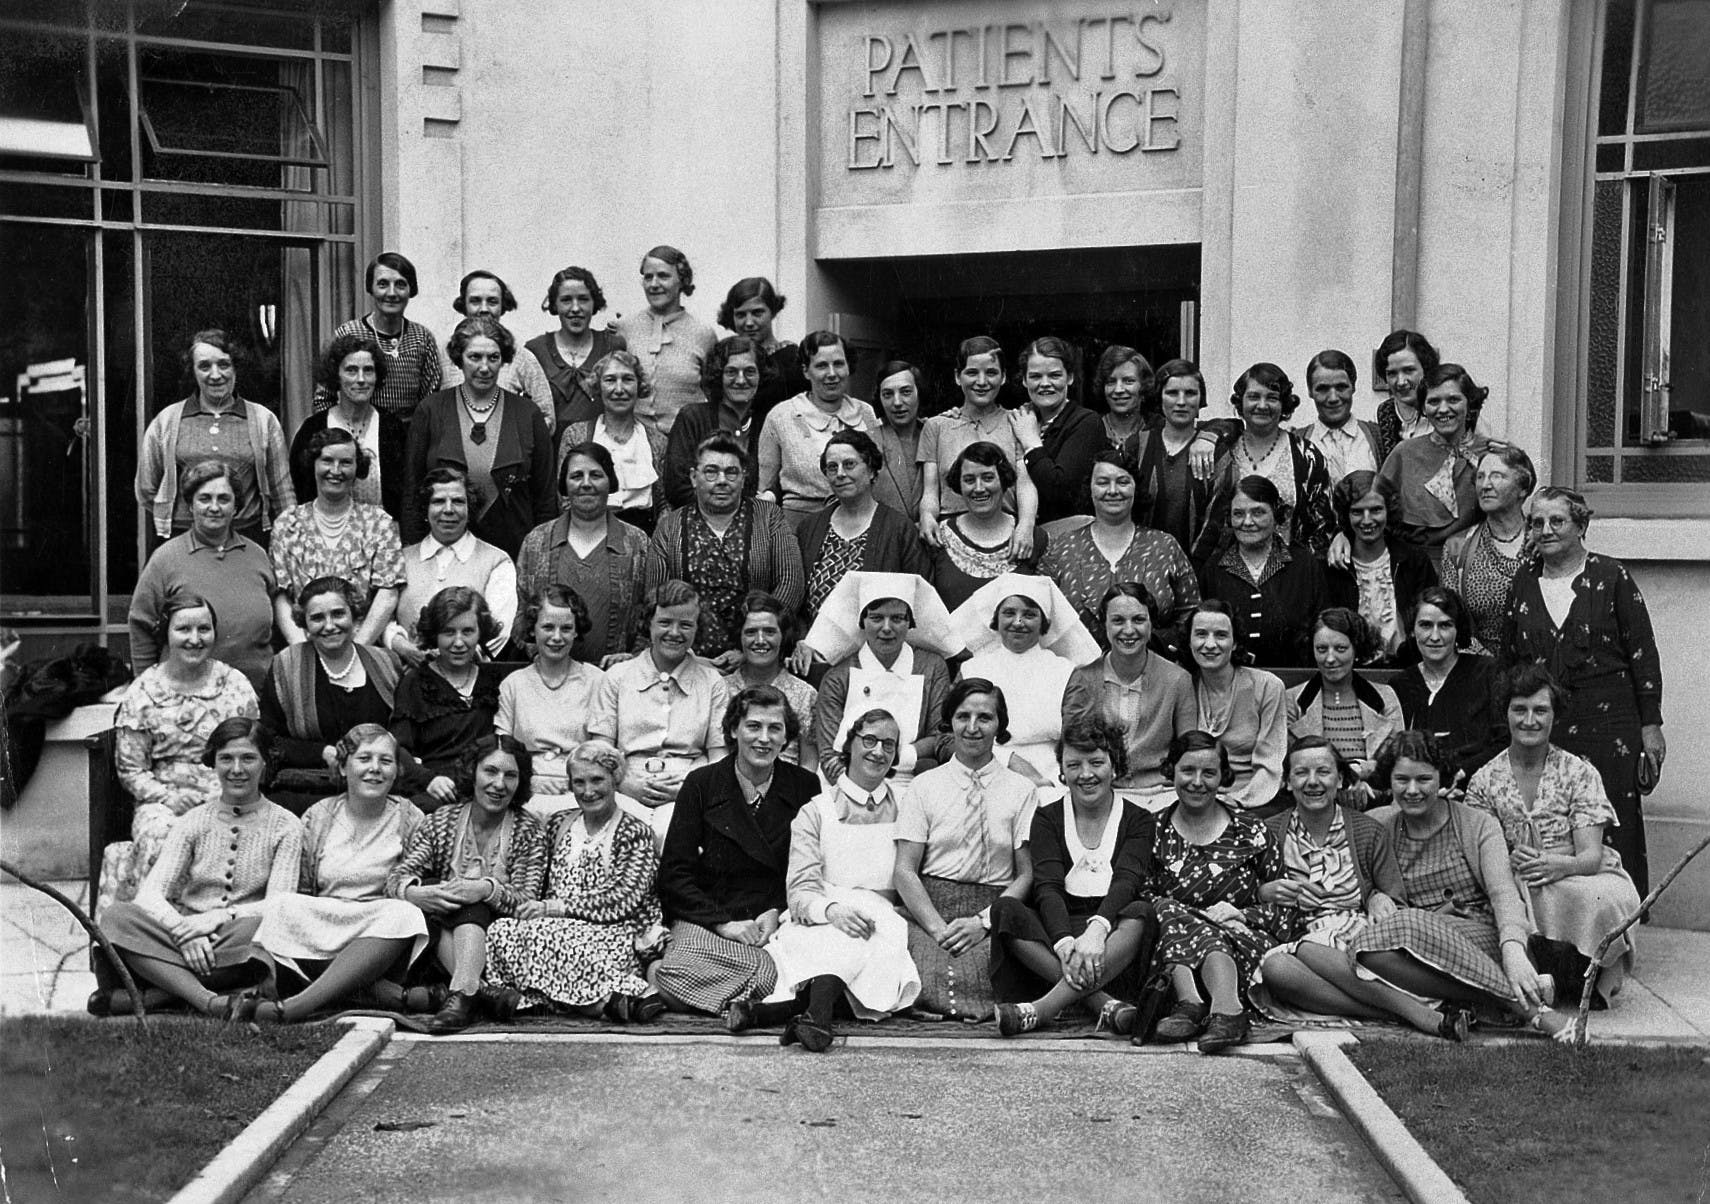 A group of women pose outside of the patients entrance at the Birmingham Hospital Saturday Fund Convalescent Home.